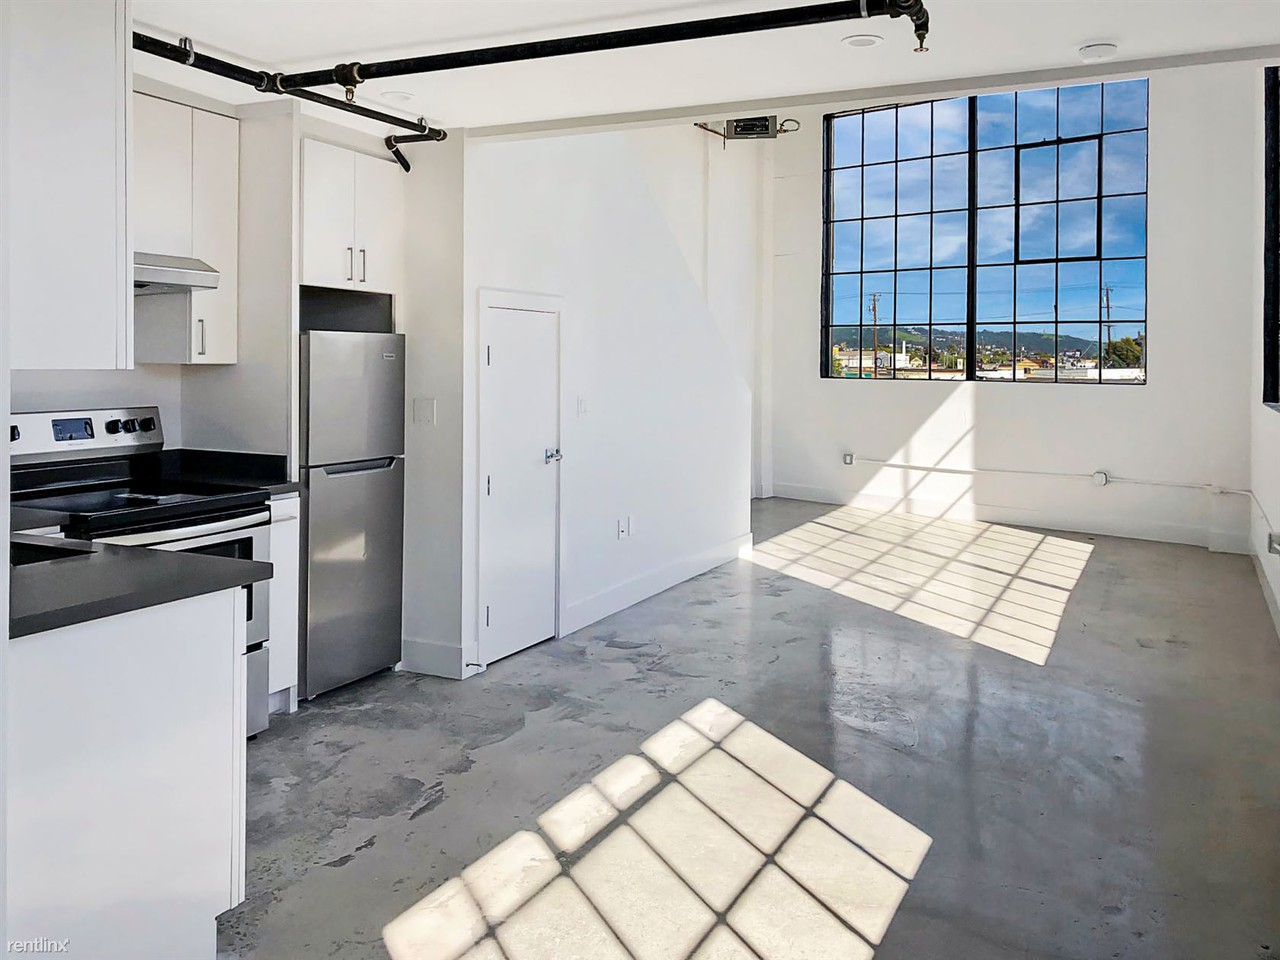 Renting in Oakland: What will $2,200 get you?